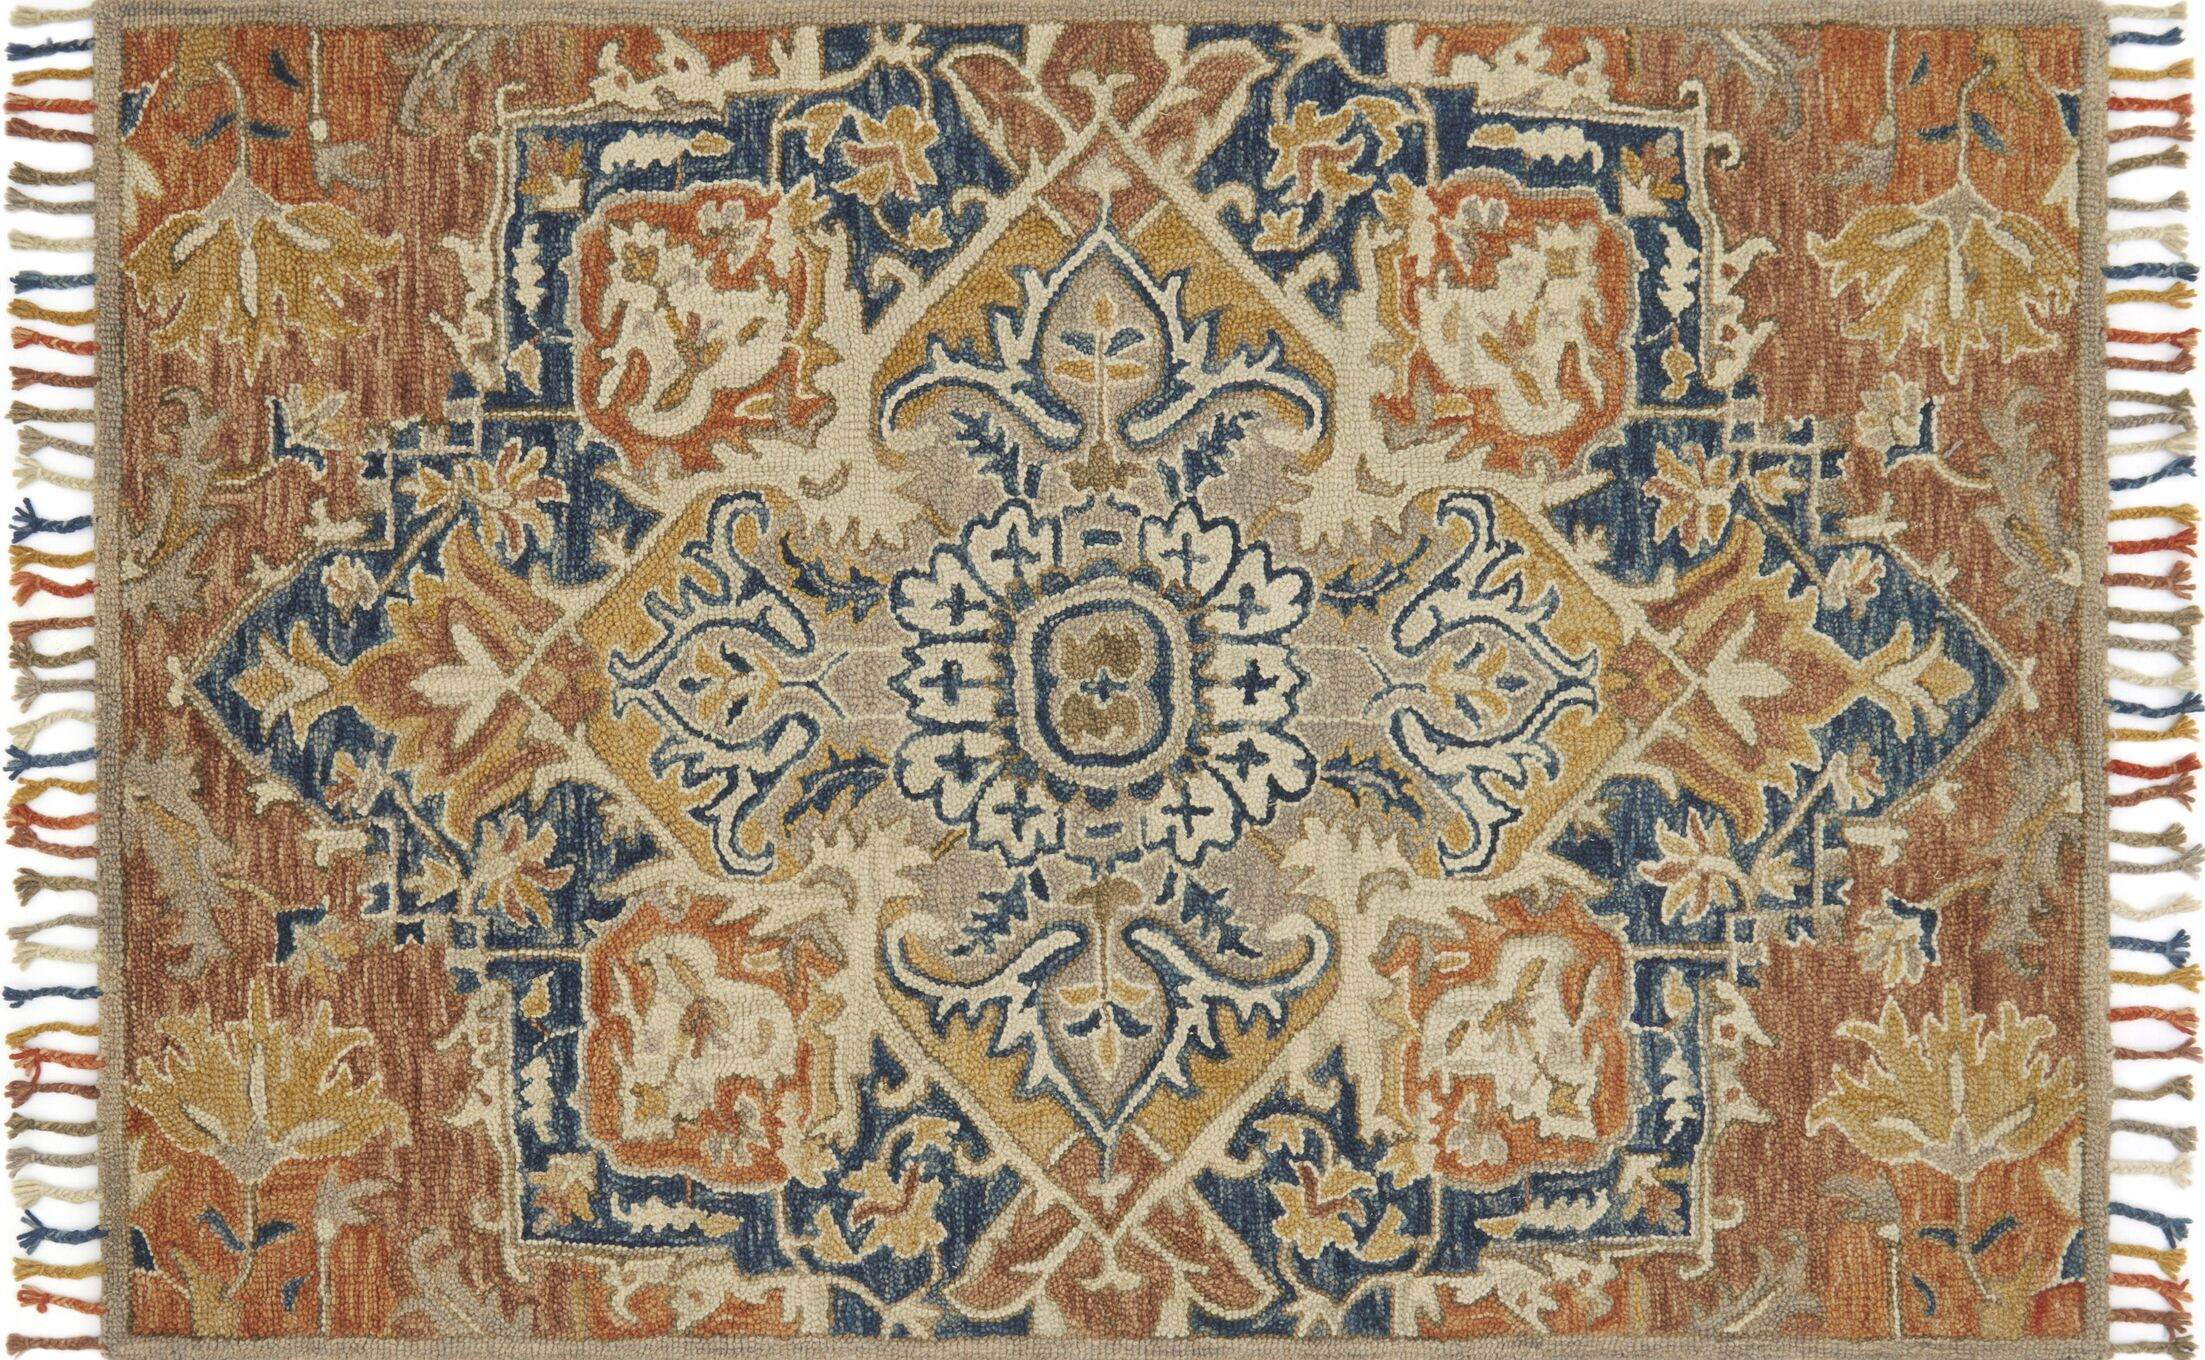 Jovany Hand-Hooked Wool Rust/Blue Area Rug Rug Size: Rectangle 7'9